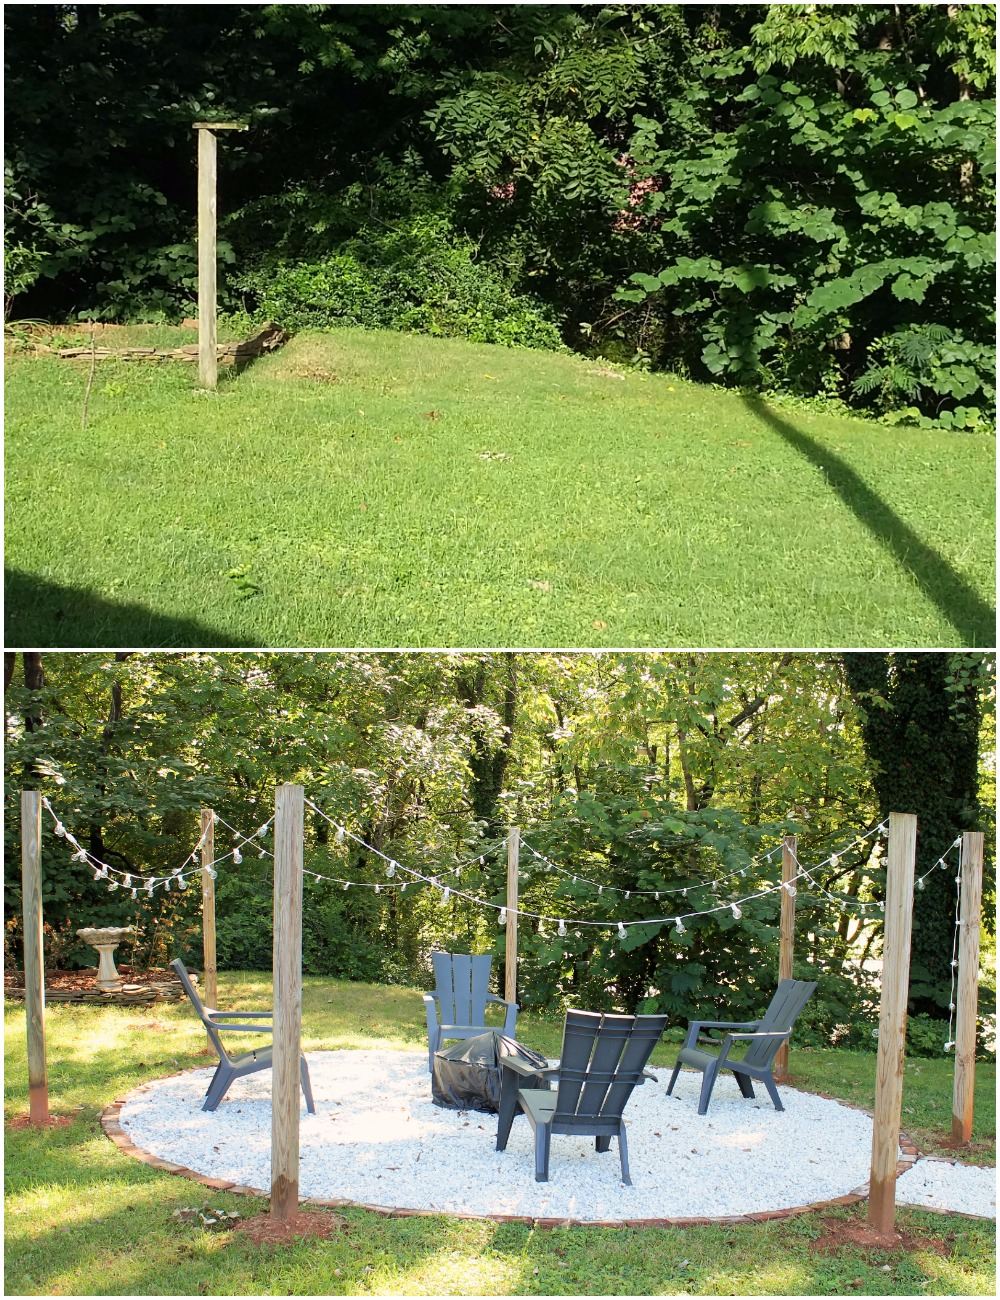 House Flipping Before and Afters - Curb Appeal and Backyard on a Budget DIY (2).jpg